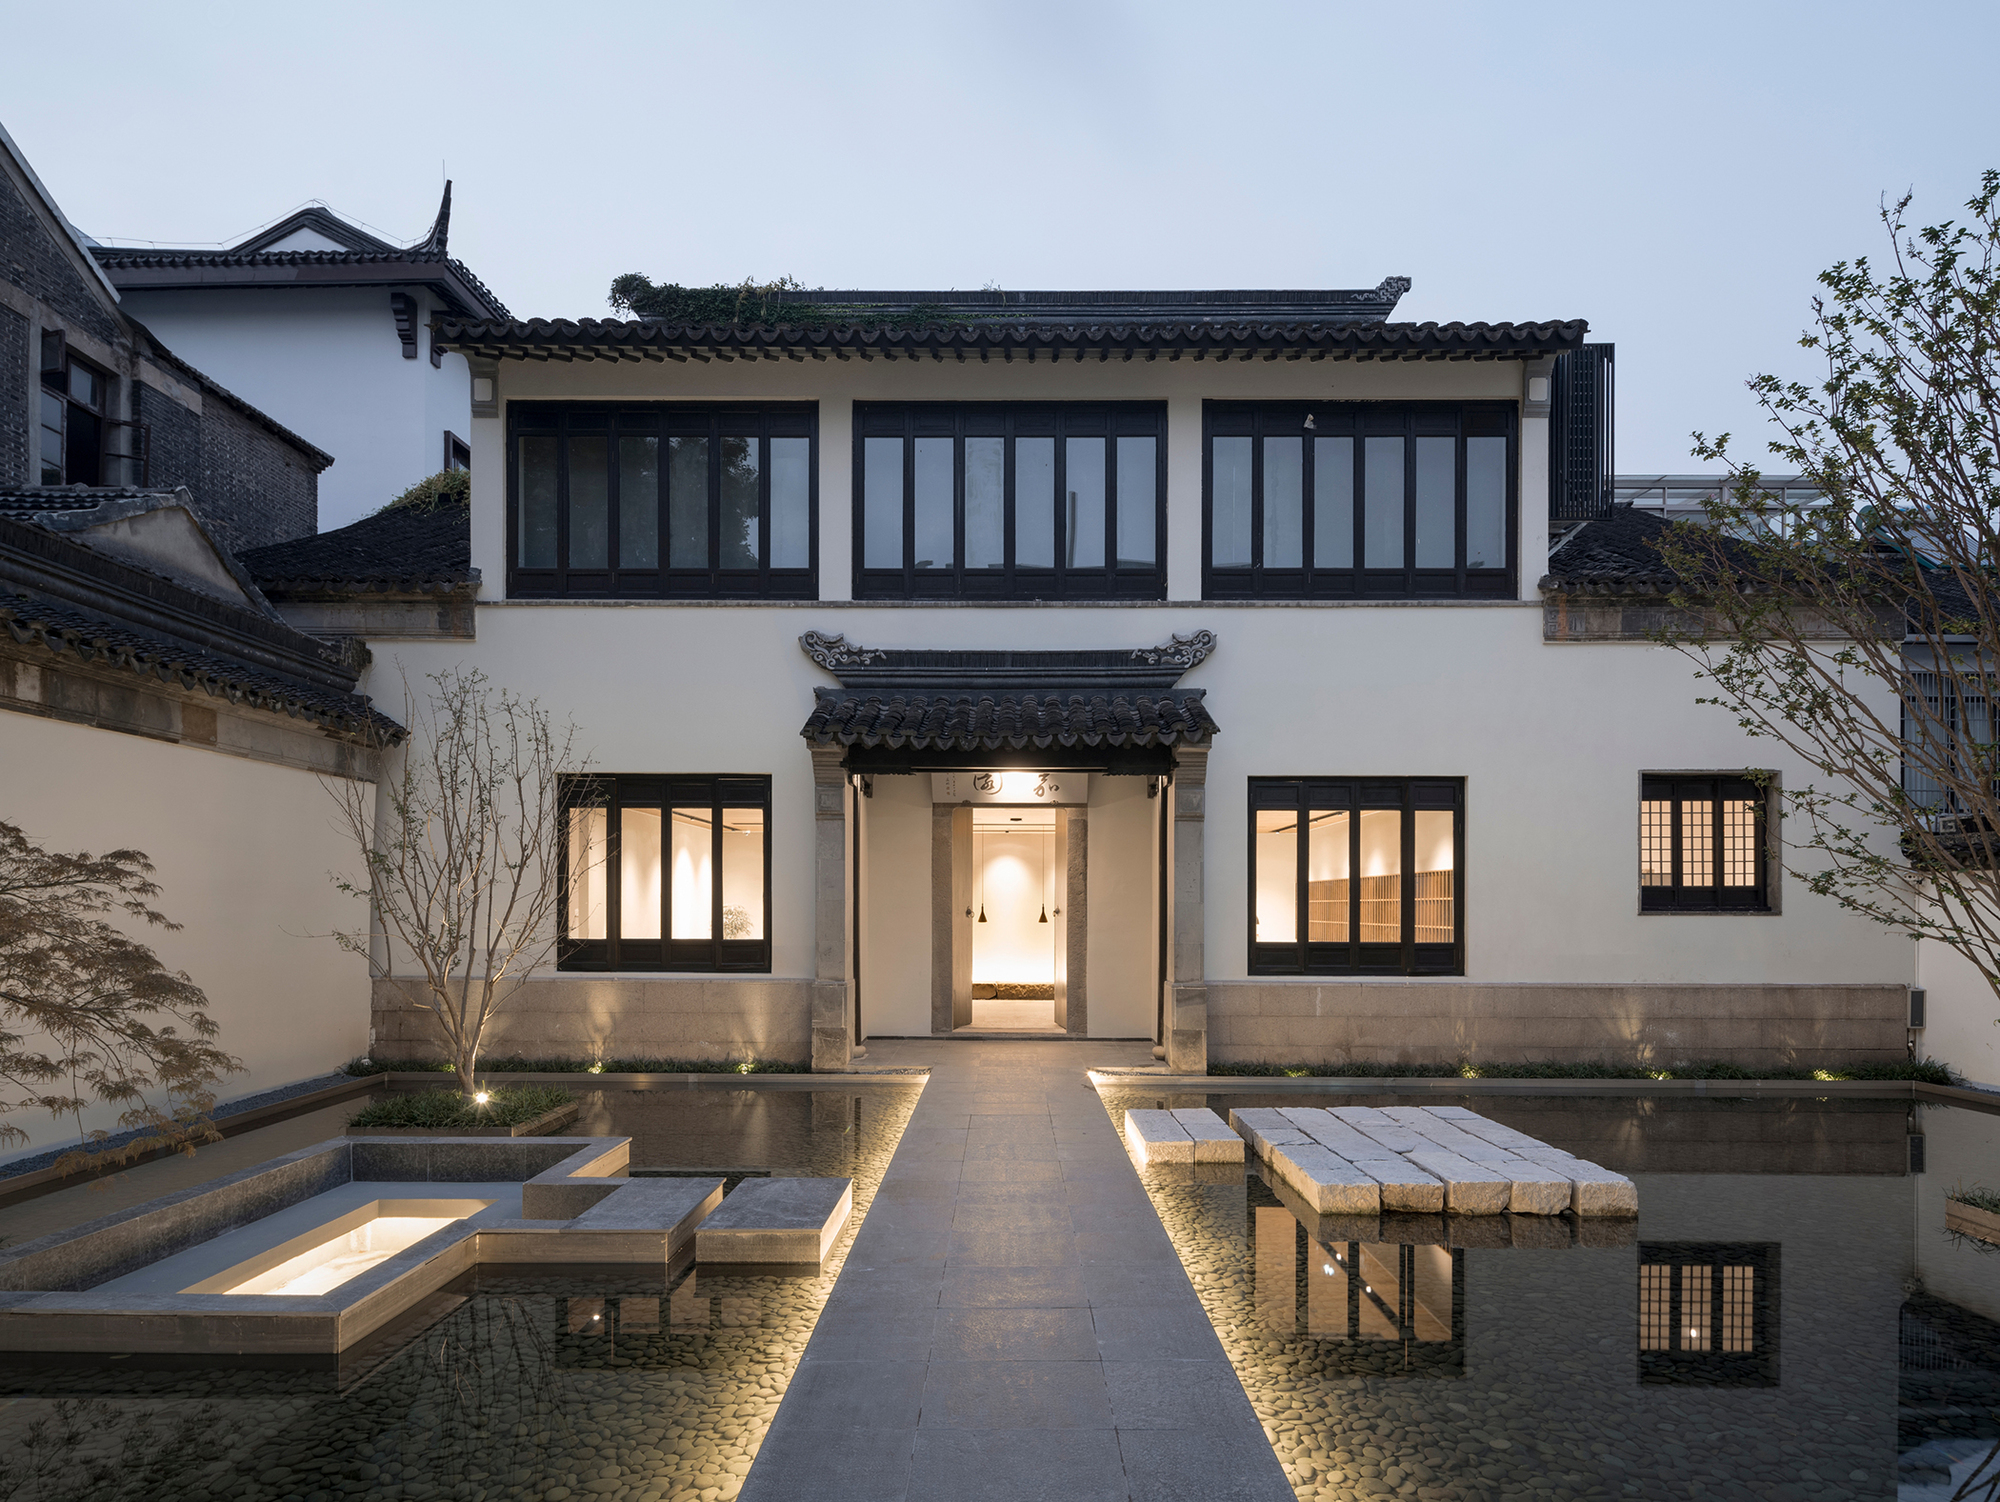 gallery of historic house renovation in suzhou b l u e